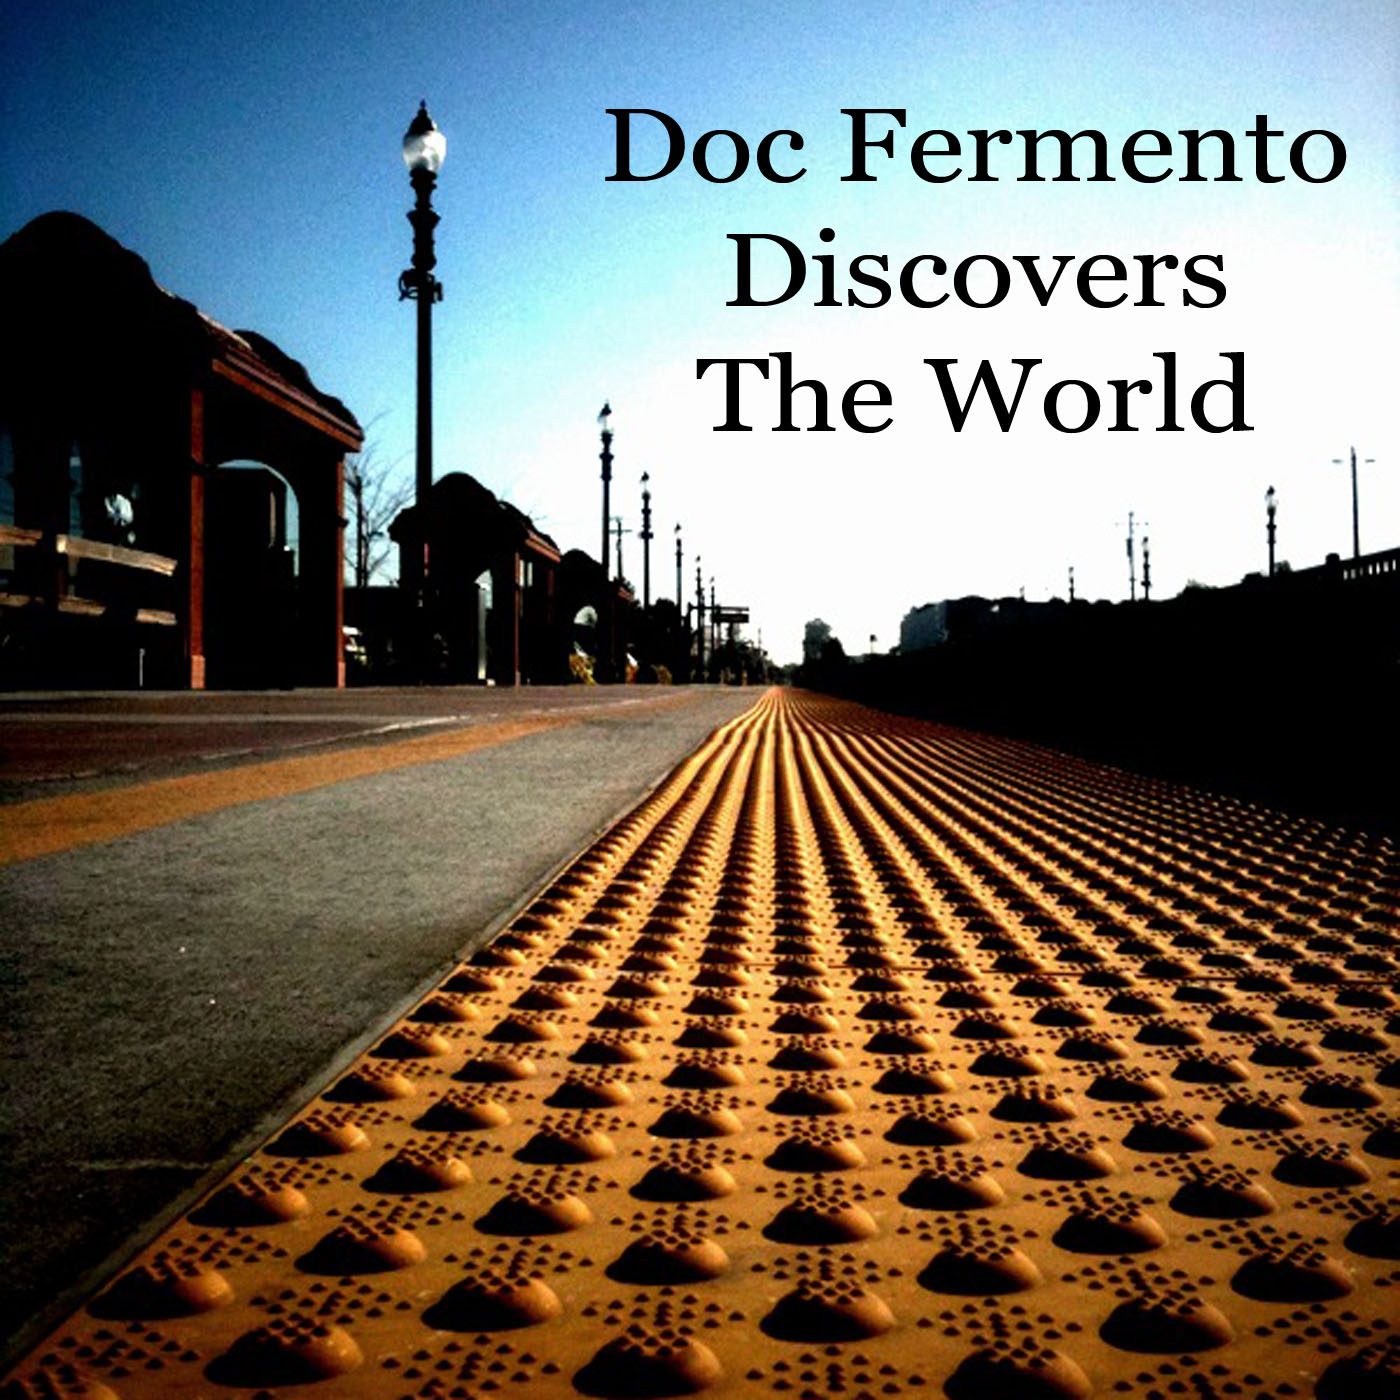 Doc Fermento Discovers The World